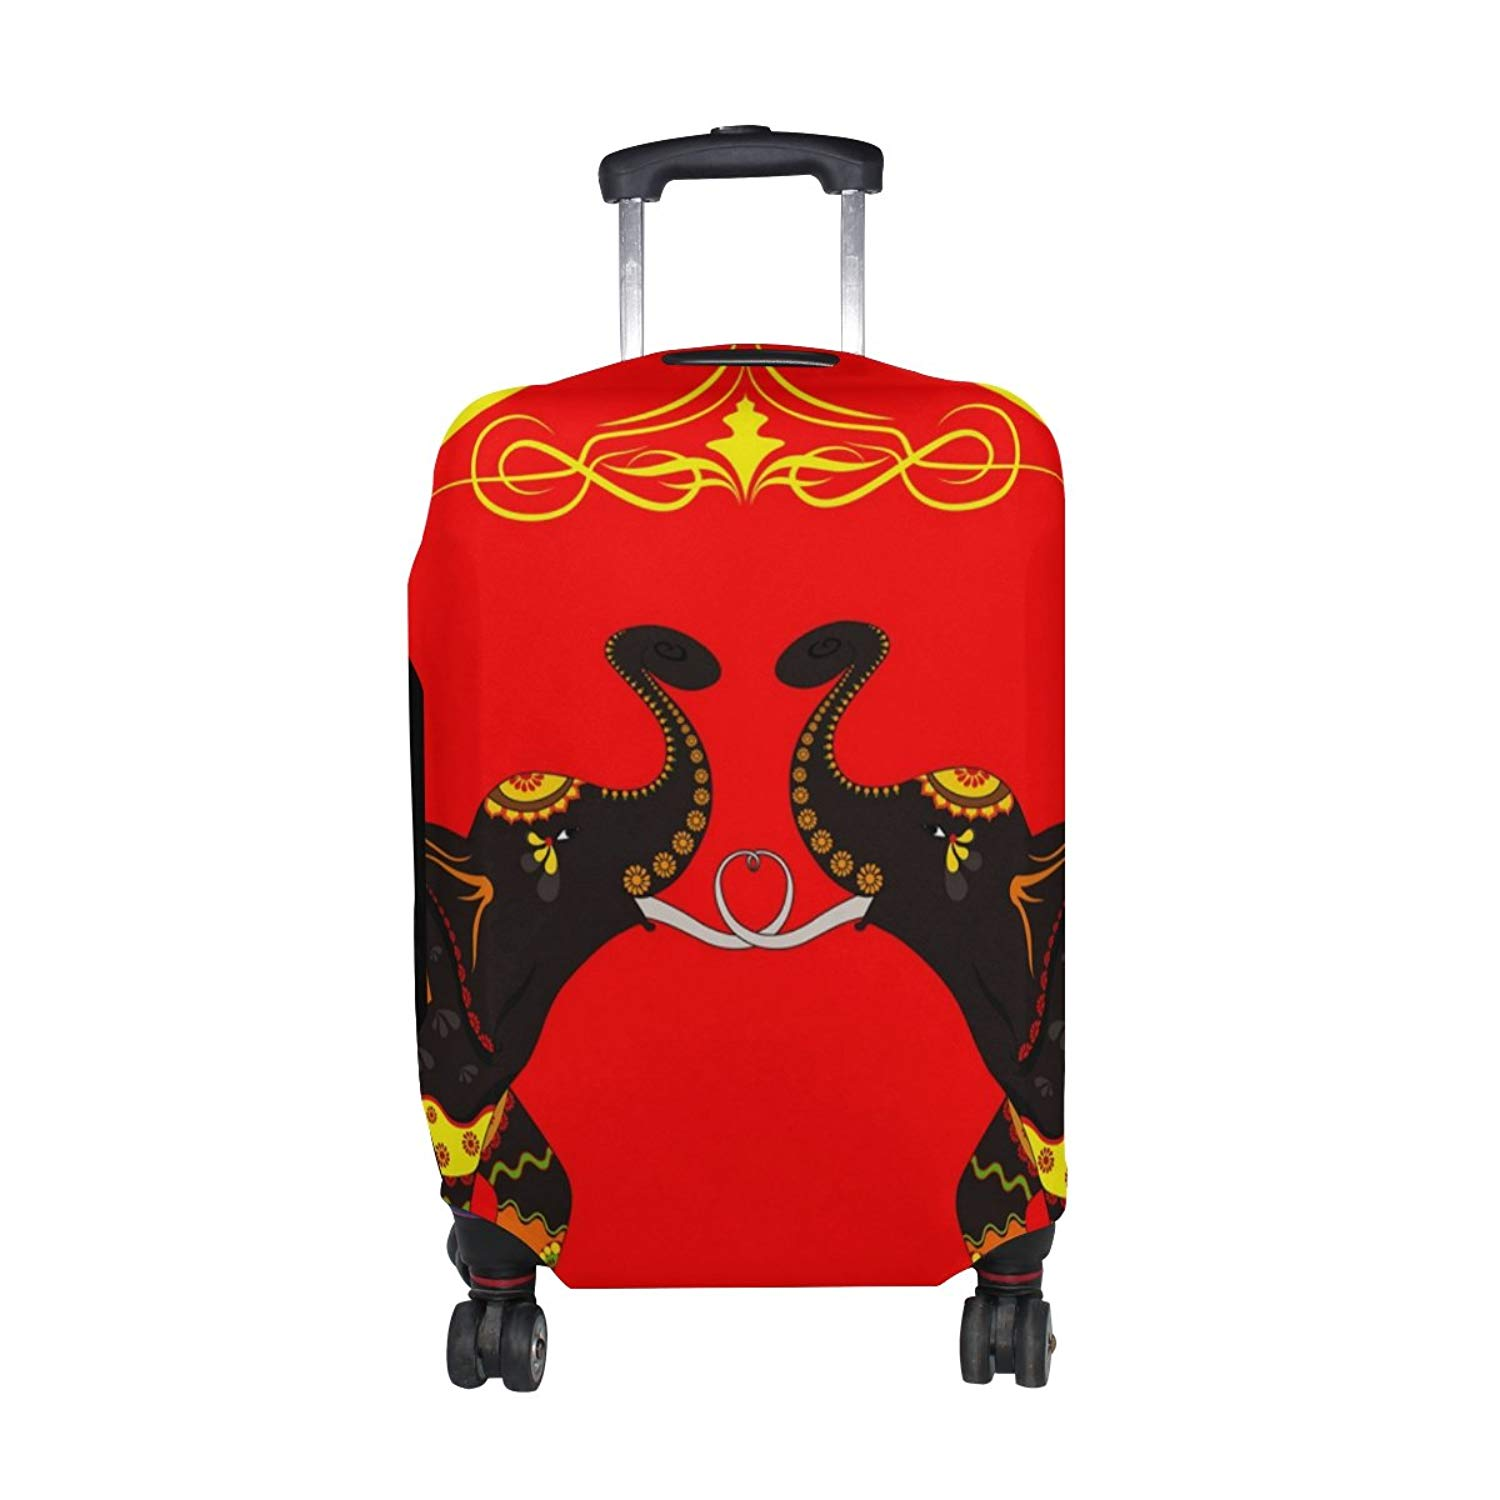 FOLPPLY Vintage Retro Peacock Luggage Cover Baggage Suitcase Travel Protector Fit for 18-32 Inch